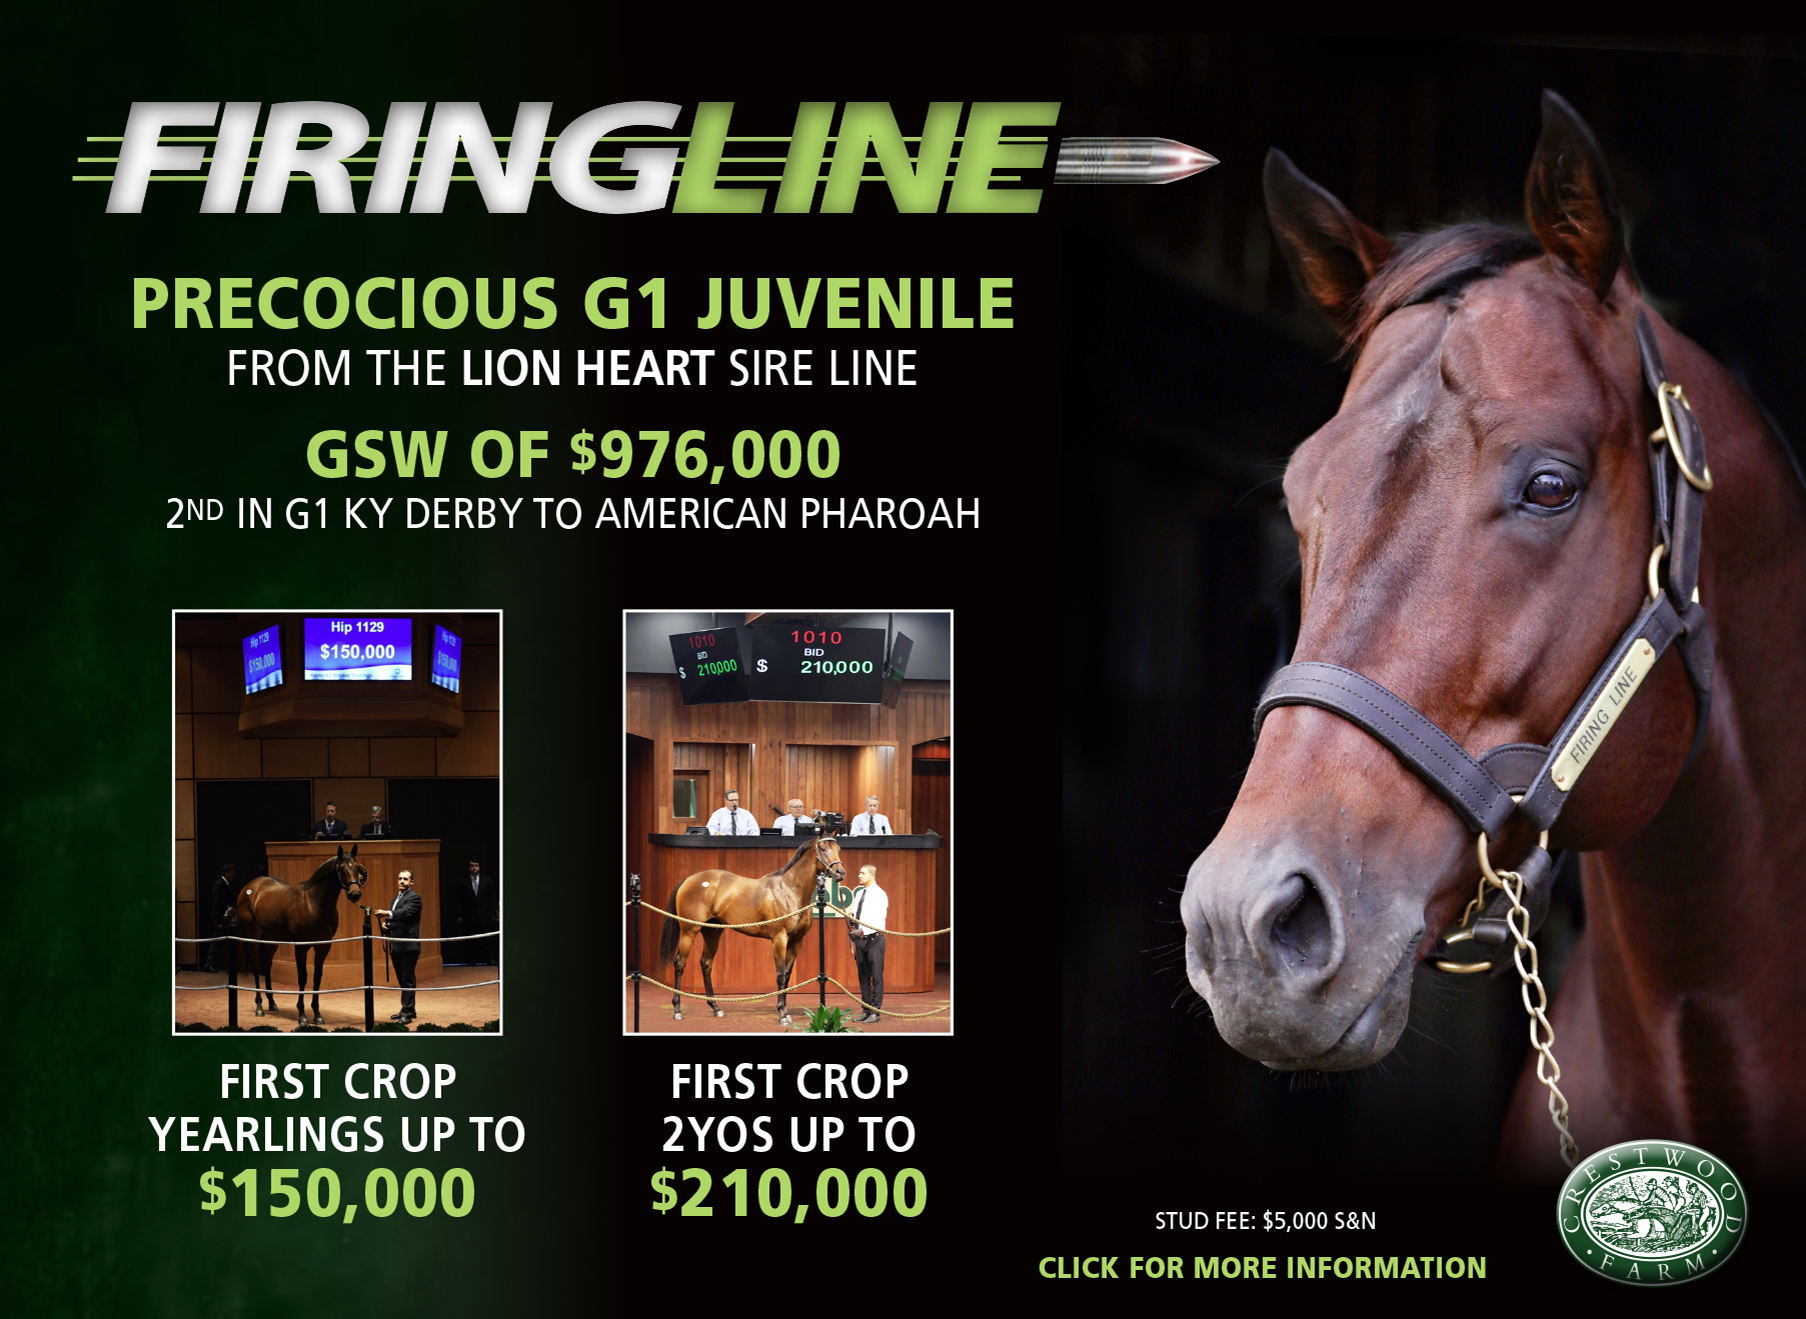 Crestwood interstitial (Firing Line) 2-26-21